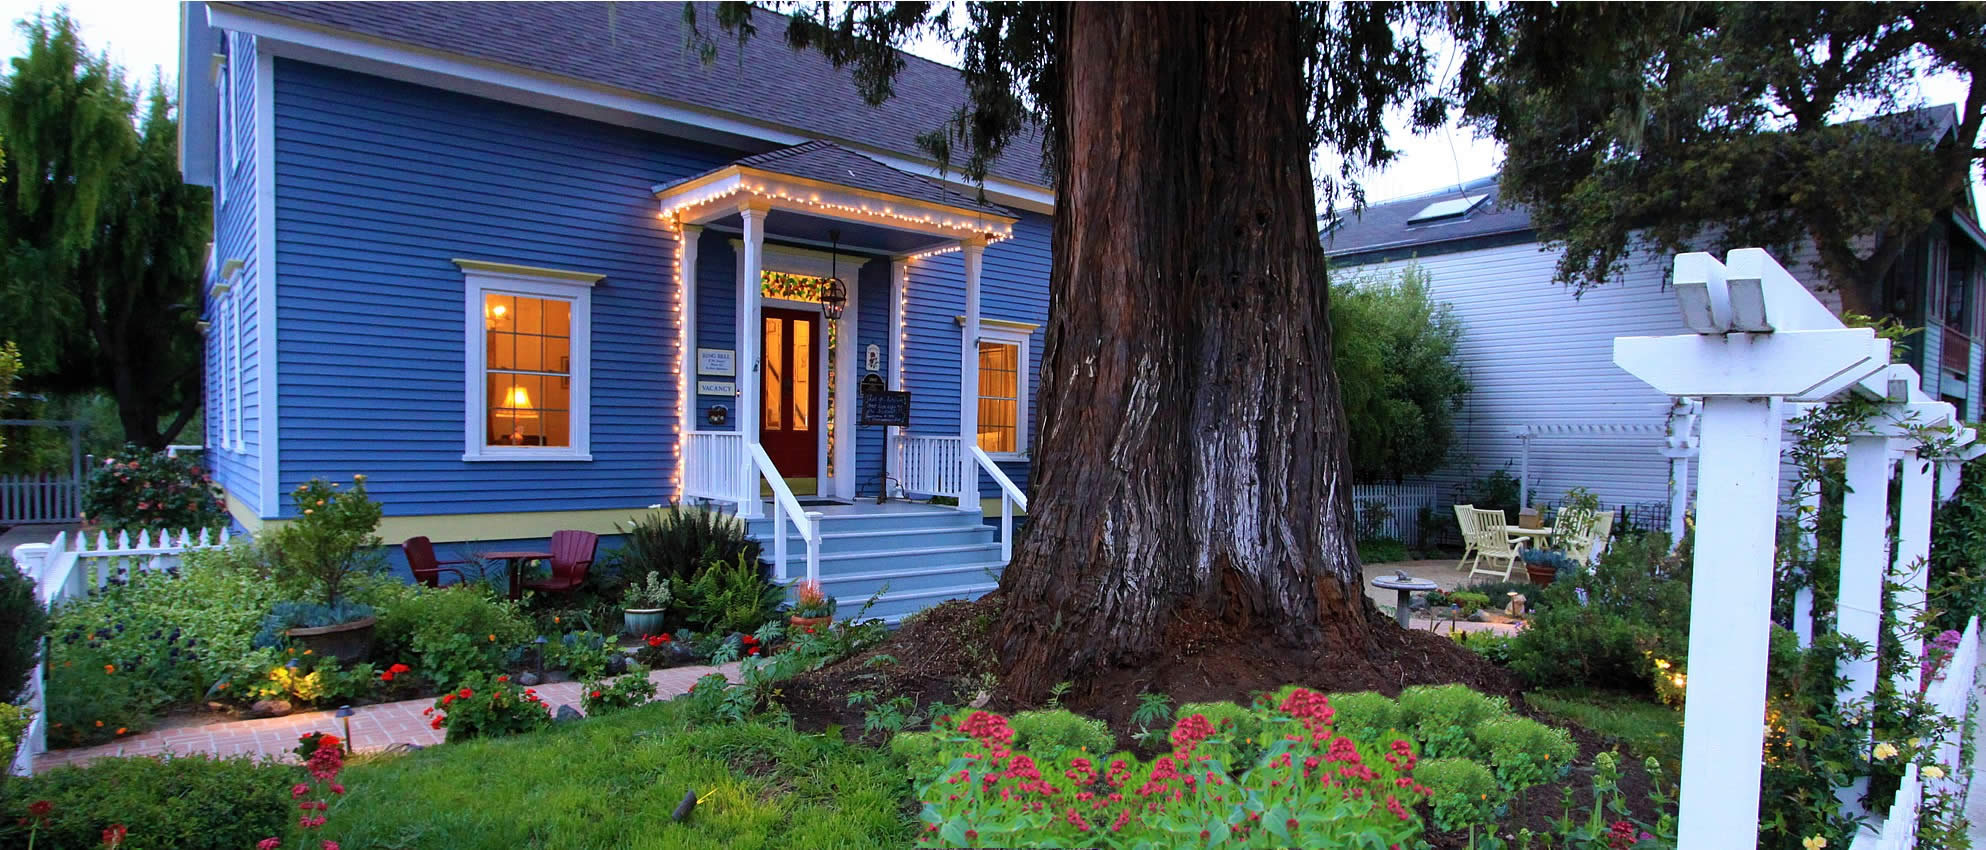 cambria ca bed and breakfast boutique hotel near moonstone beach